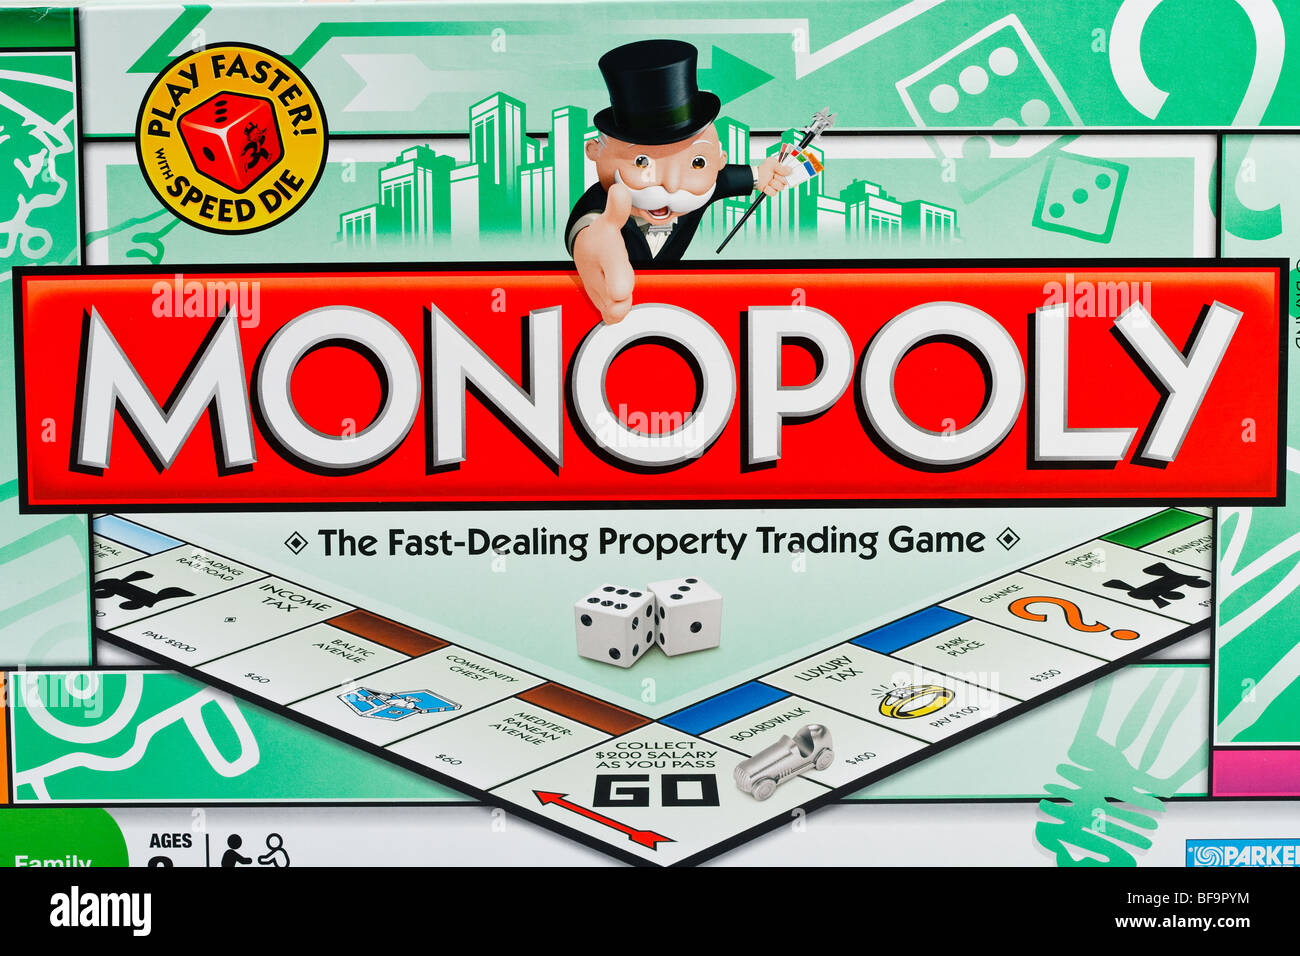 Monopoly Board Game - Stock Image